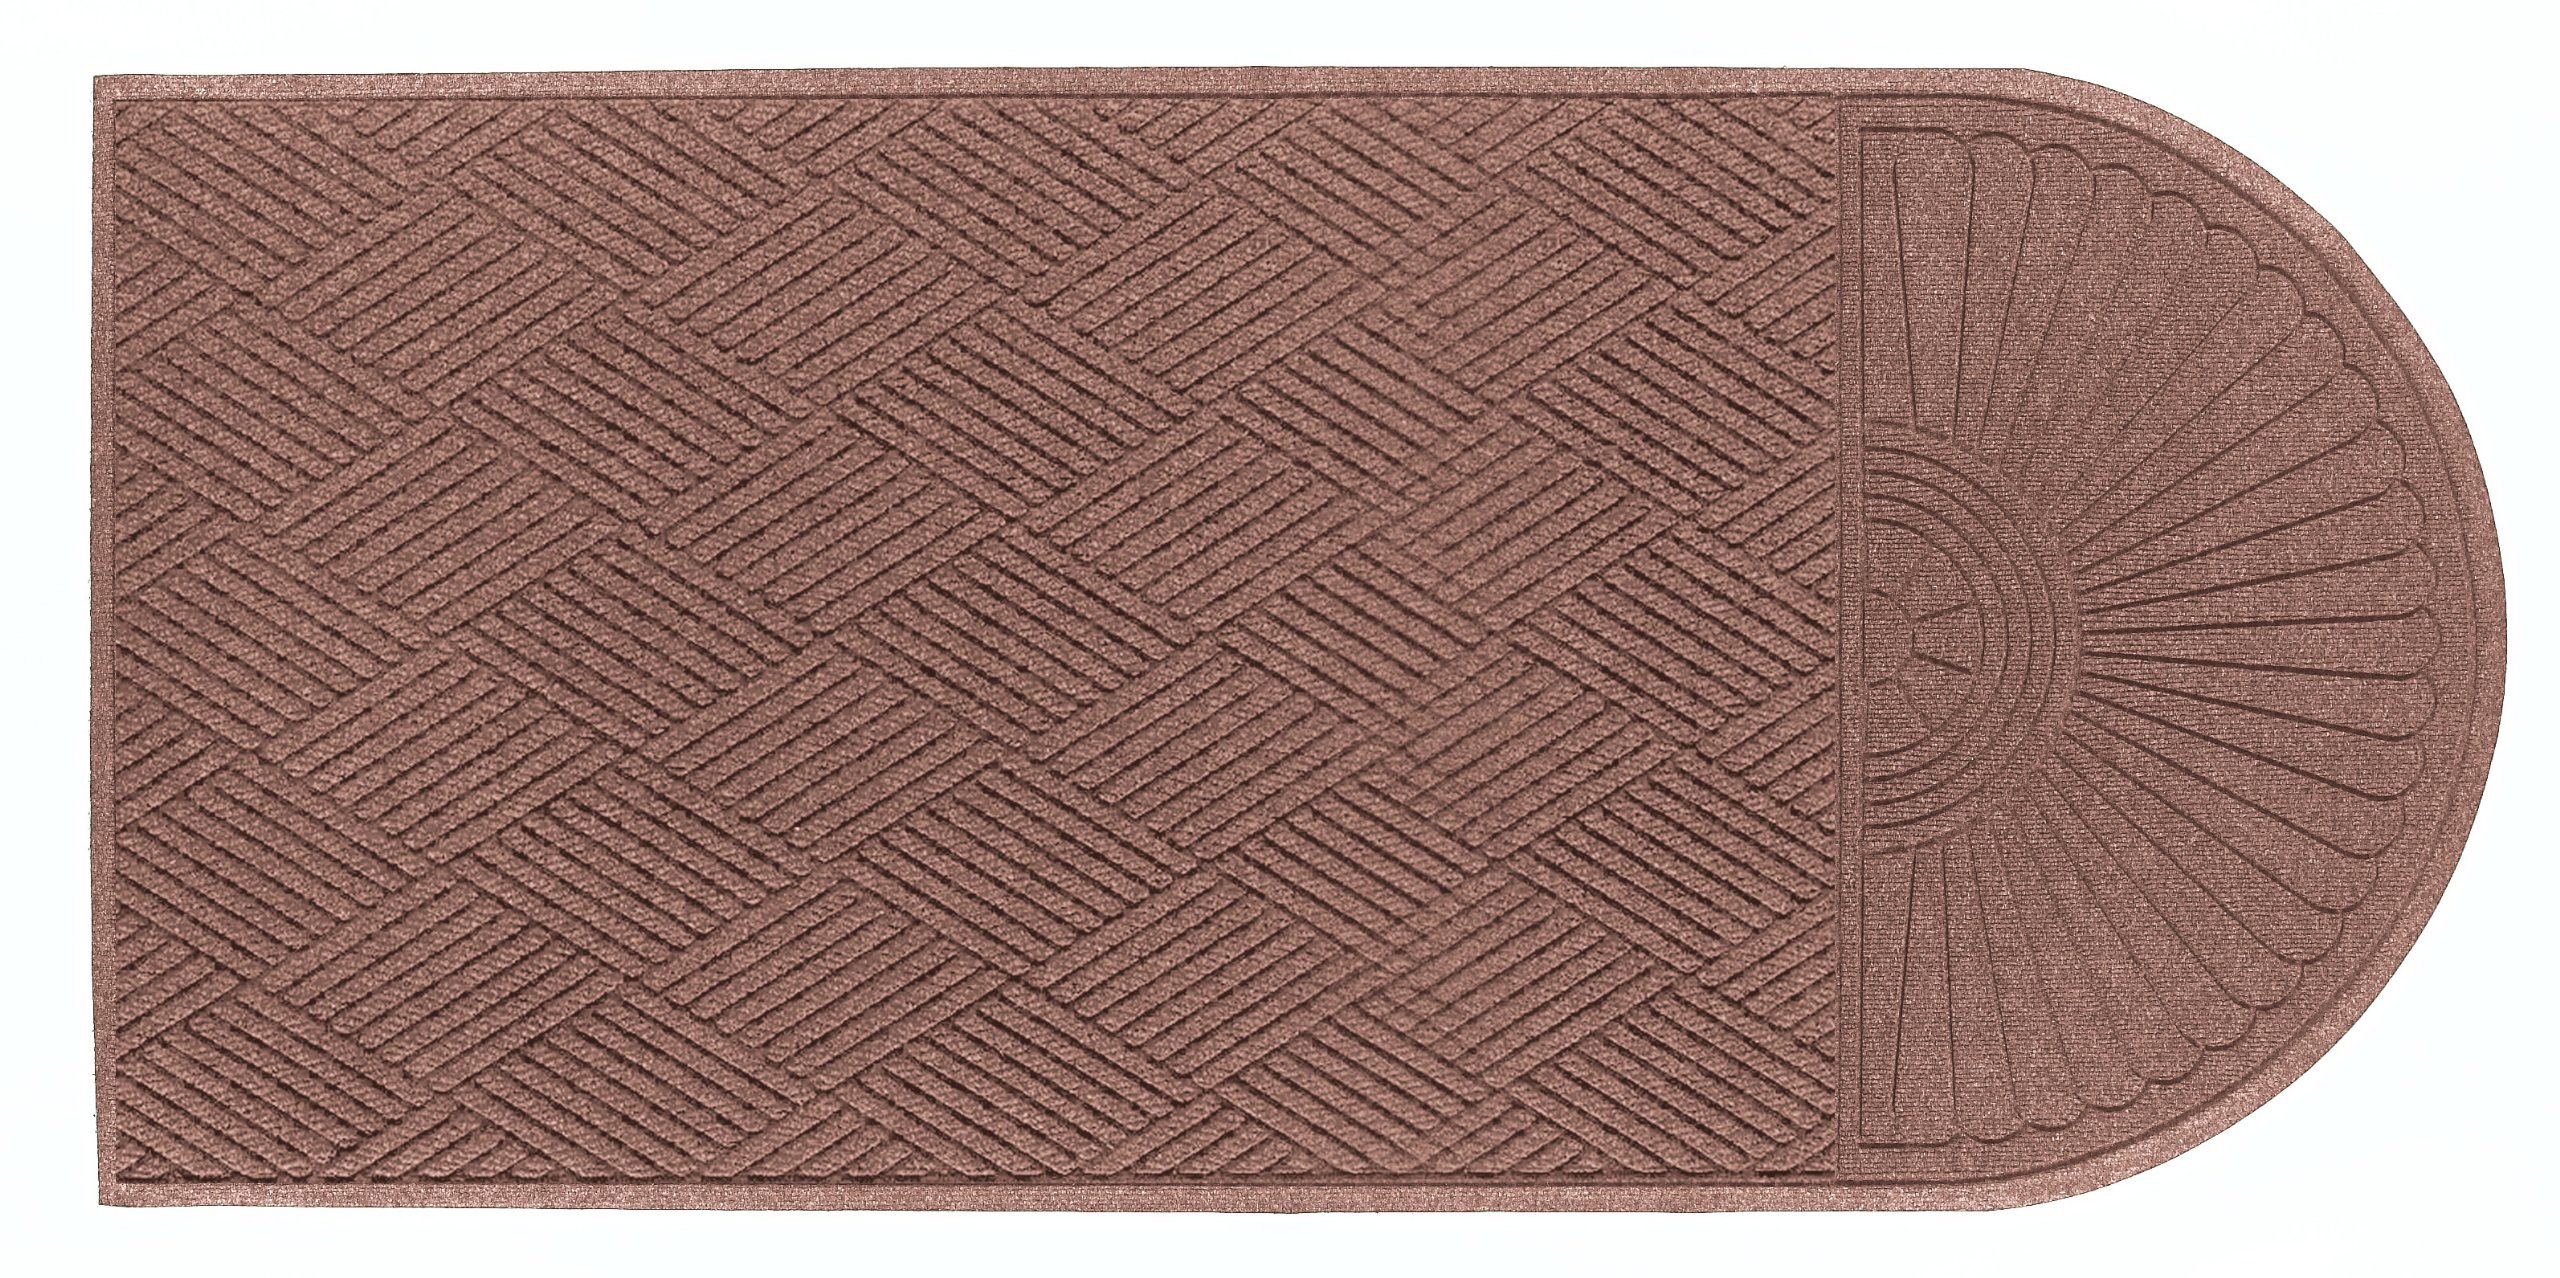 Andersen 273 Waterhog Grand Classic Polypropylene Fiber Single End Entrance Indoor/Outdoor Floor Mat, SBR Rubber Backing, 7' Length x 6' Width, 3/8'' Thick, Medium Brown